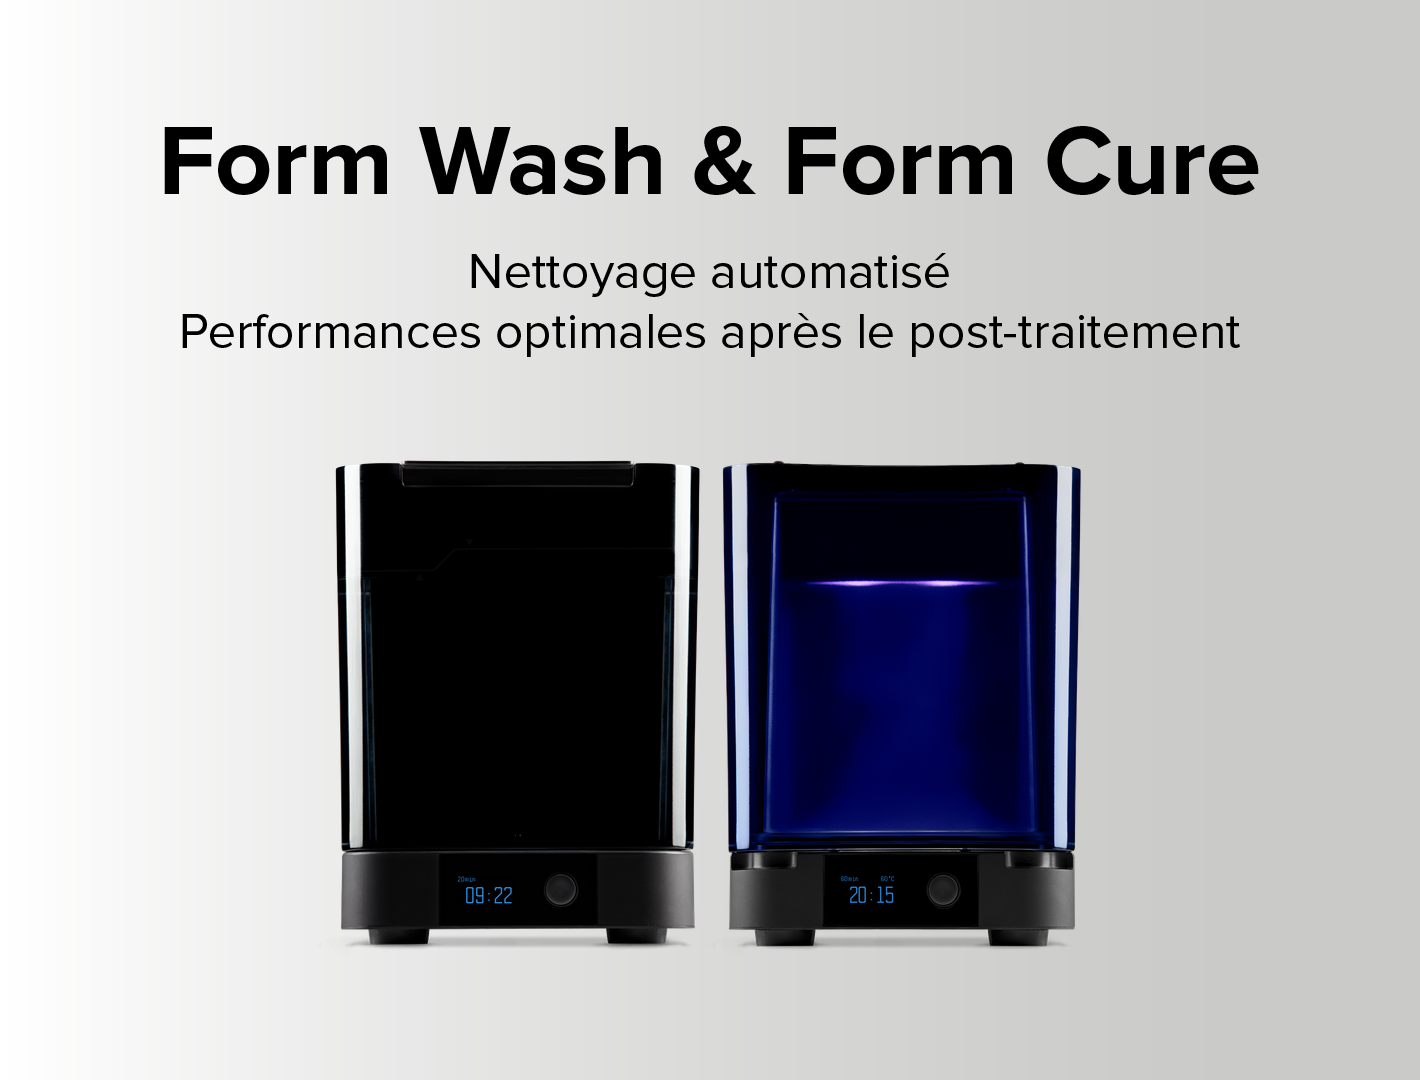 Form Wash & Form Cure, Nettoyage automatisé, Performances optimales après le post-traitement